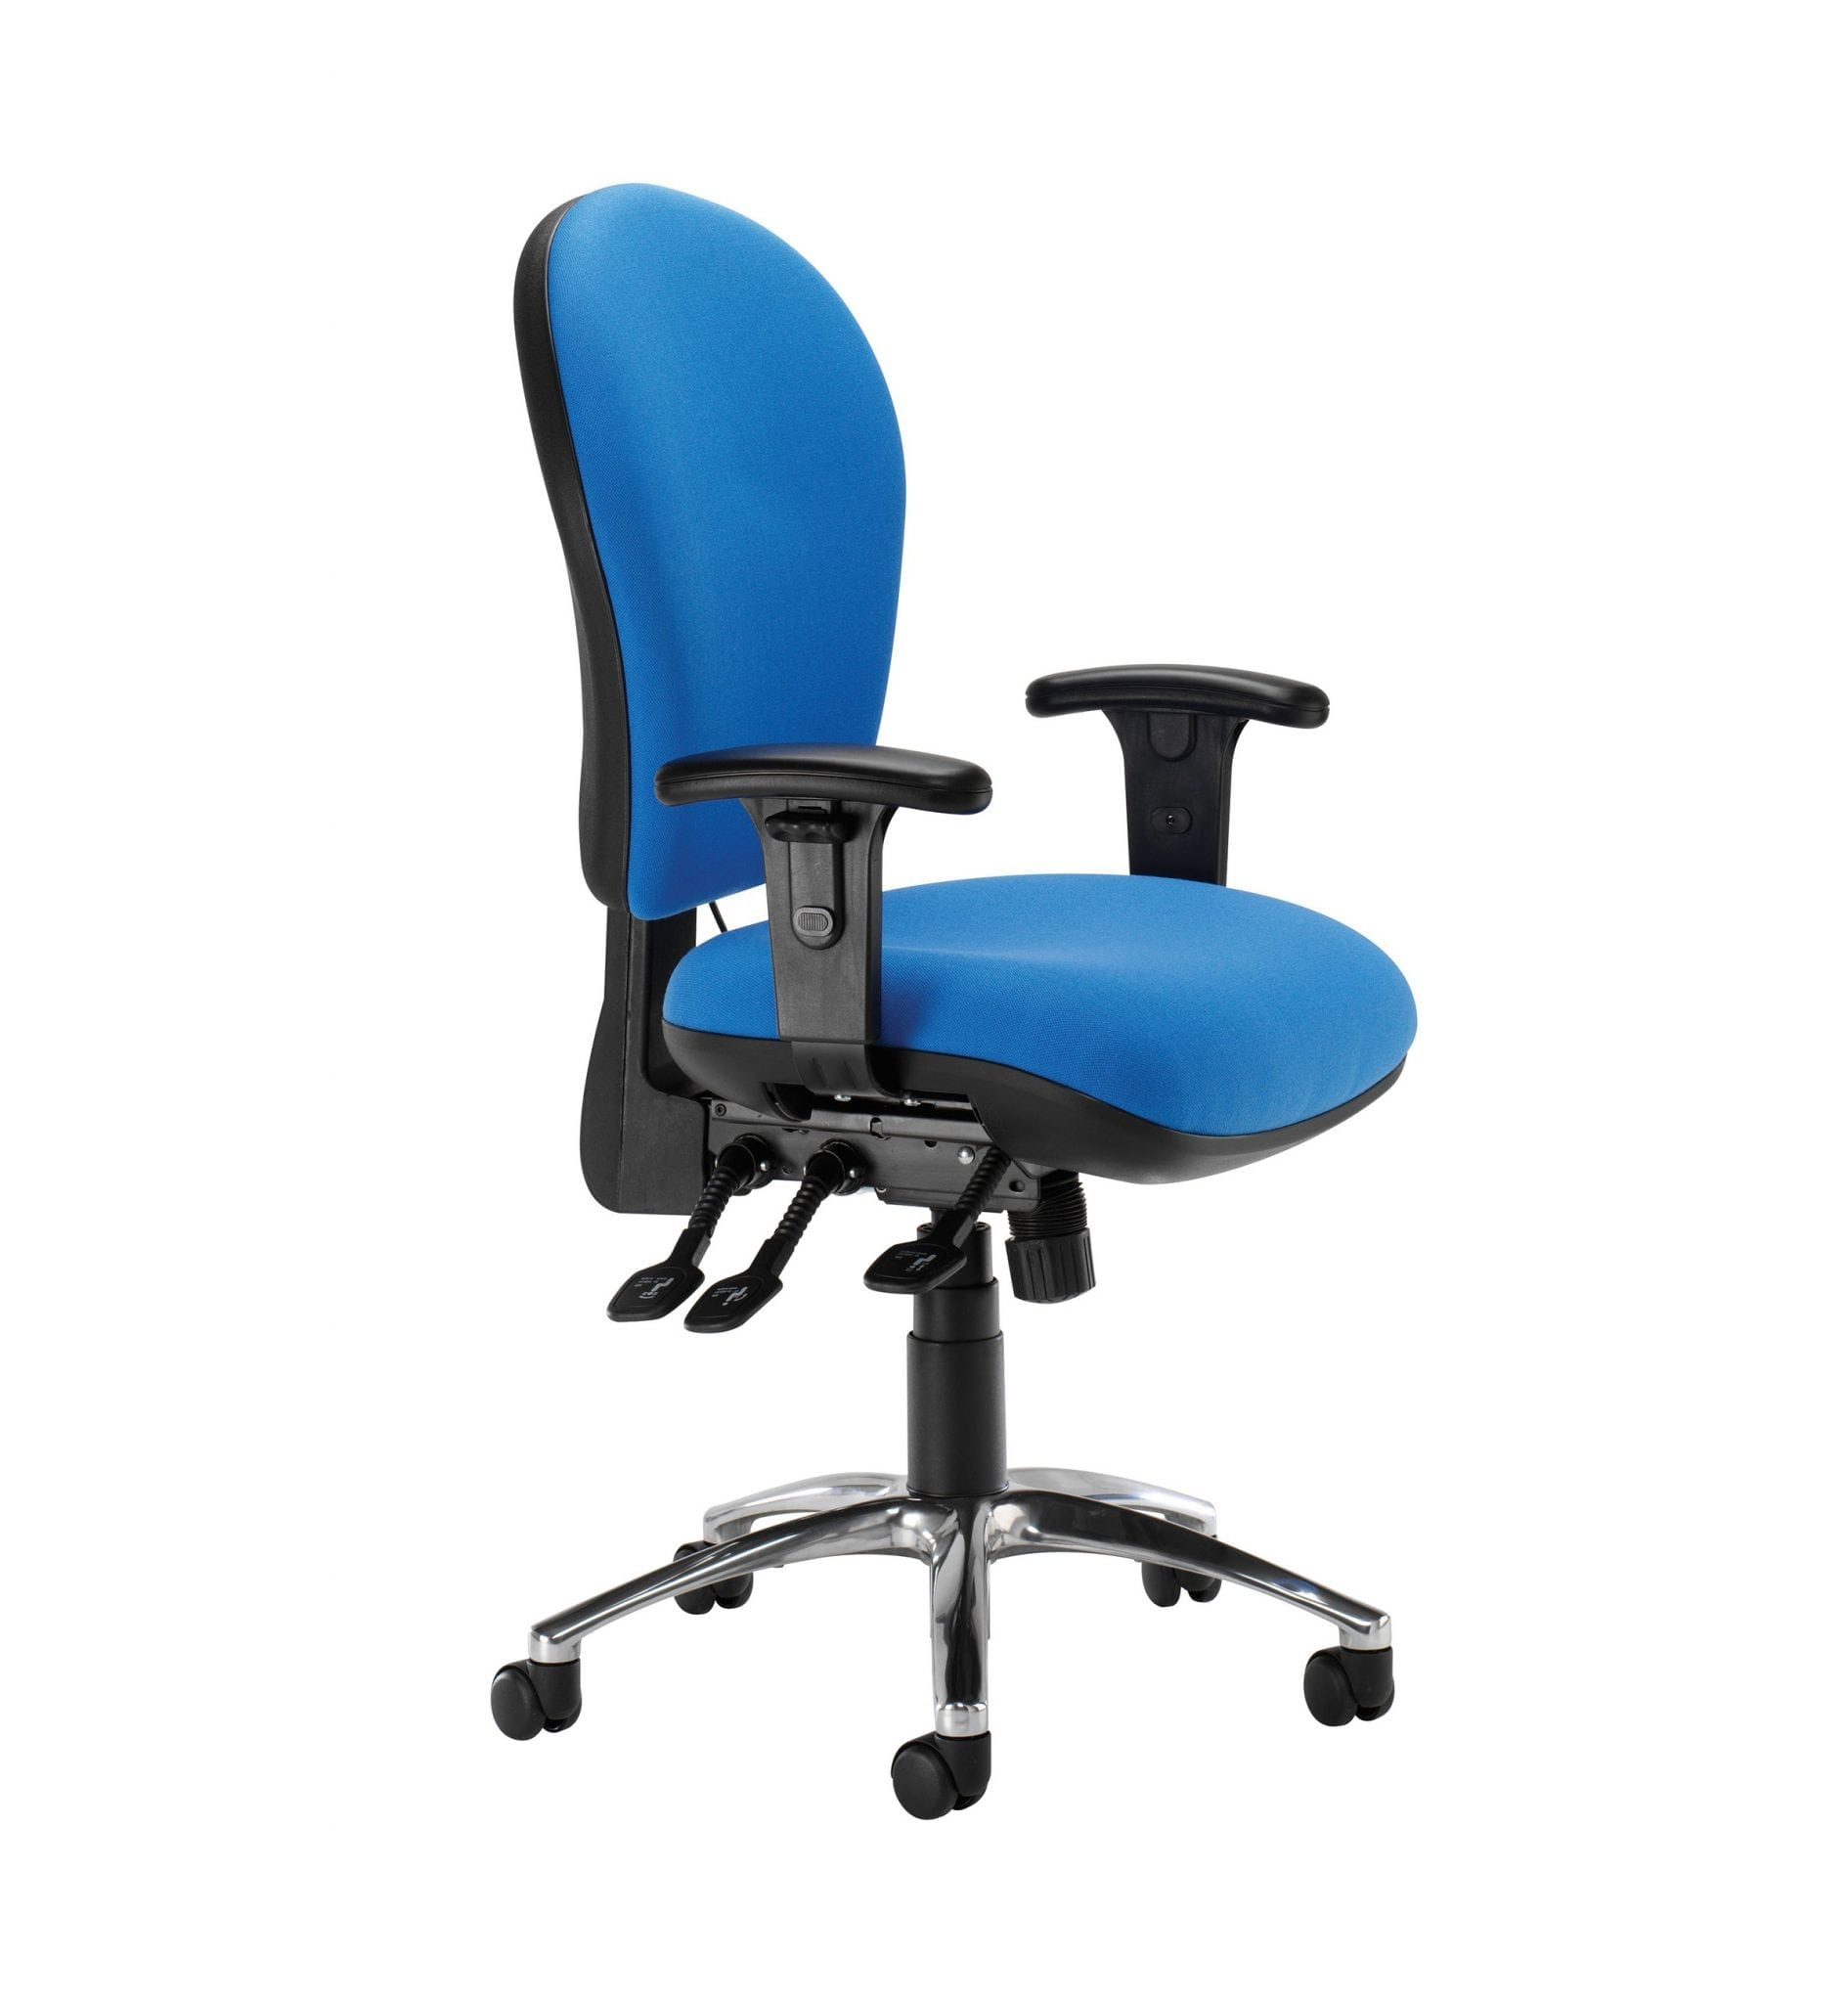 BL22ADJ – Blenheim range - Classic task office chair with advanced operator synchro functionality and adjustable arms – from Summit Chairs